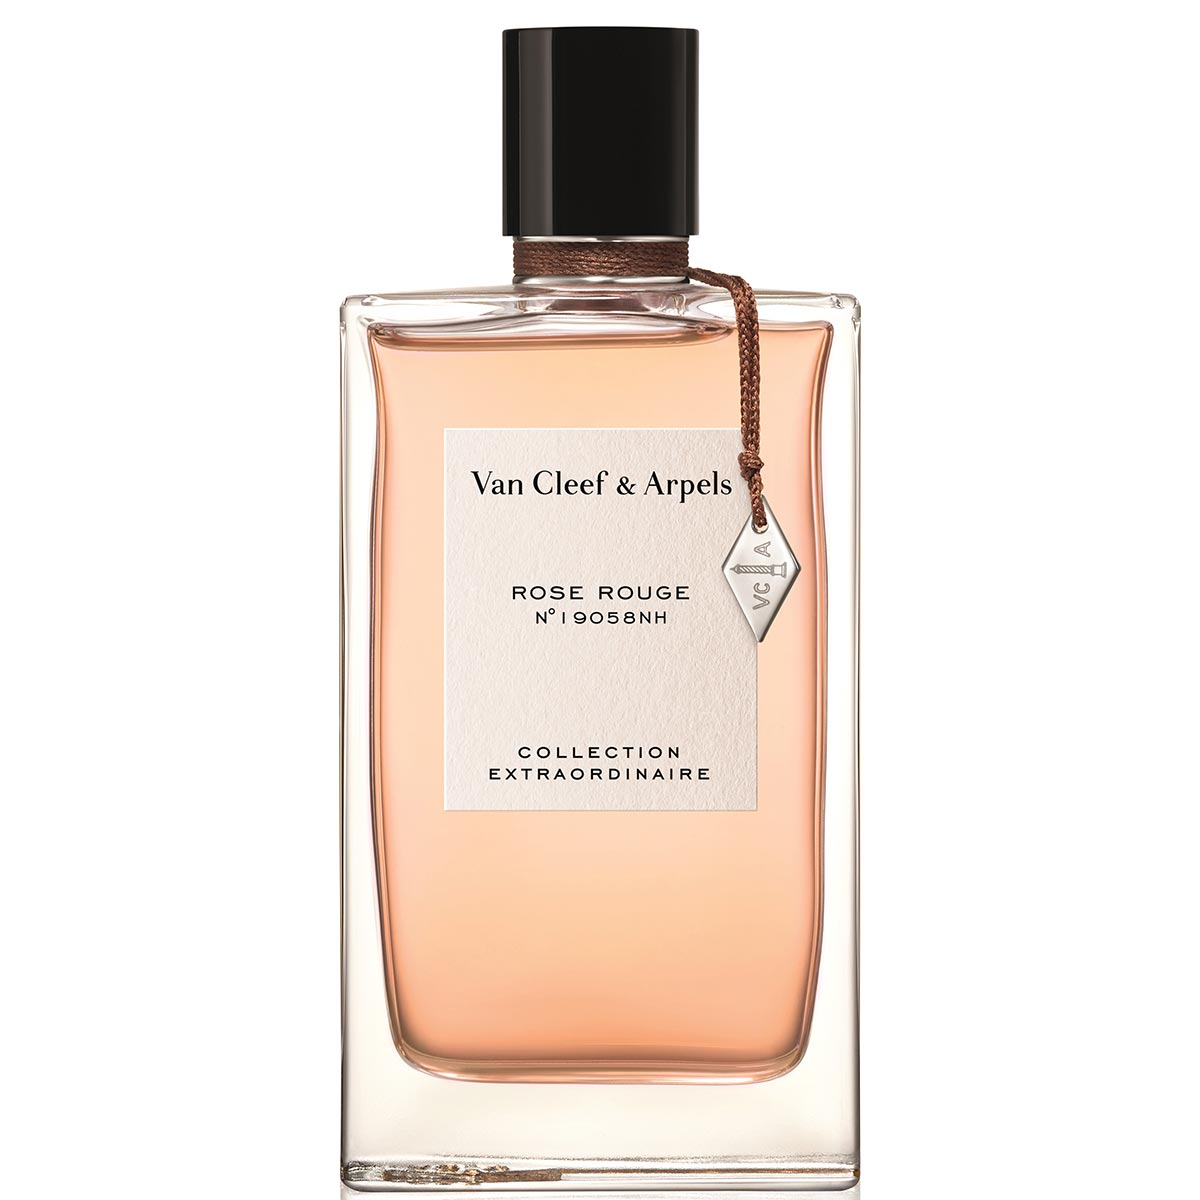 Van Cleef & Arpels Rose Rouge EdP